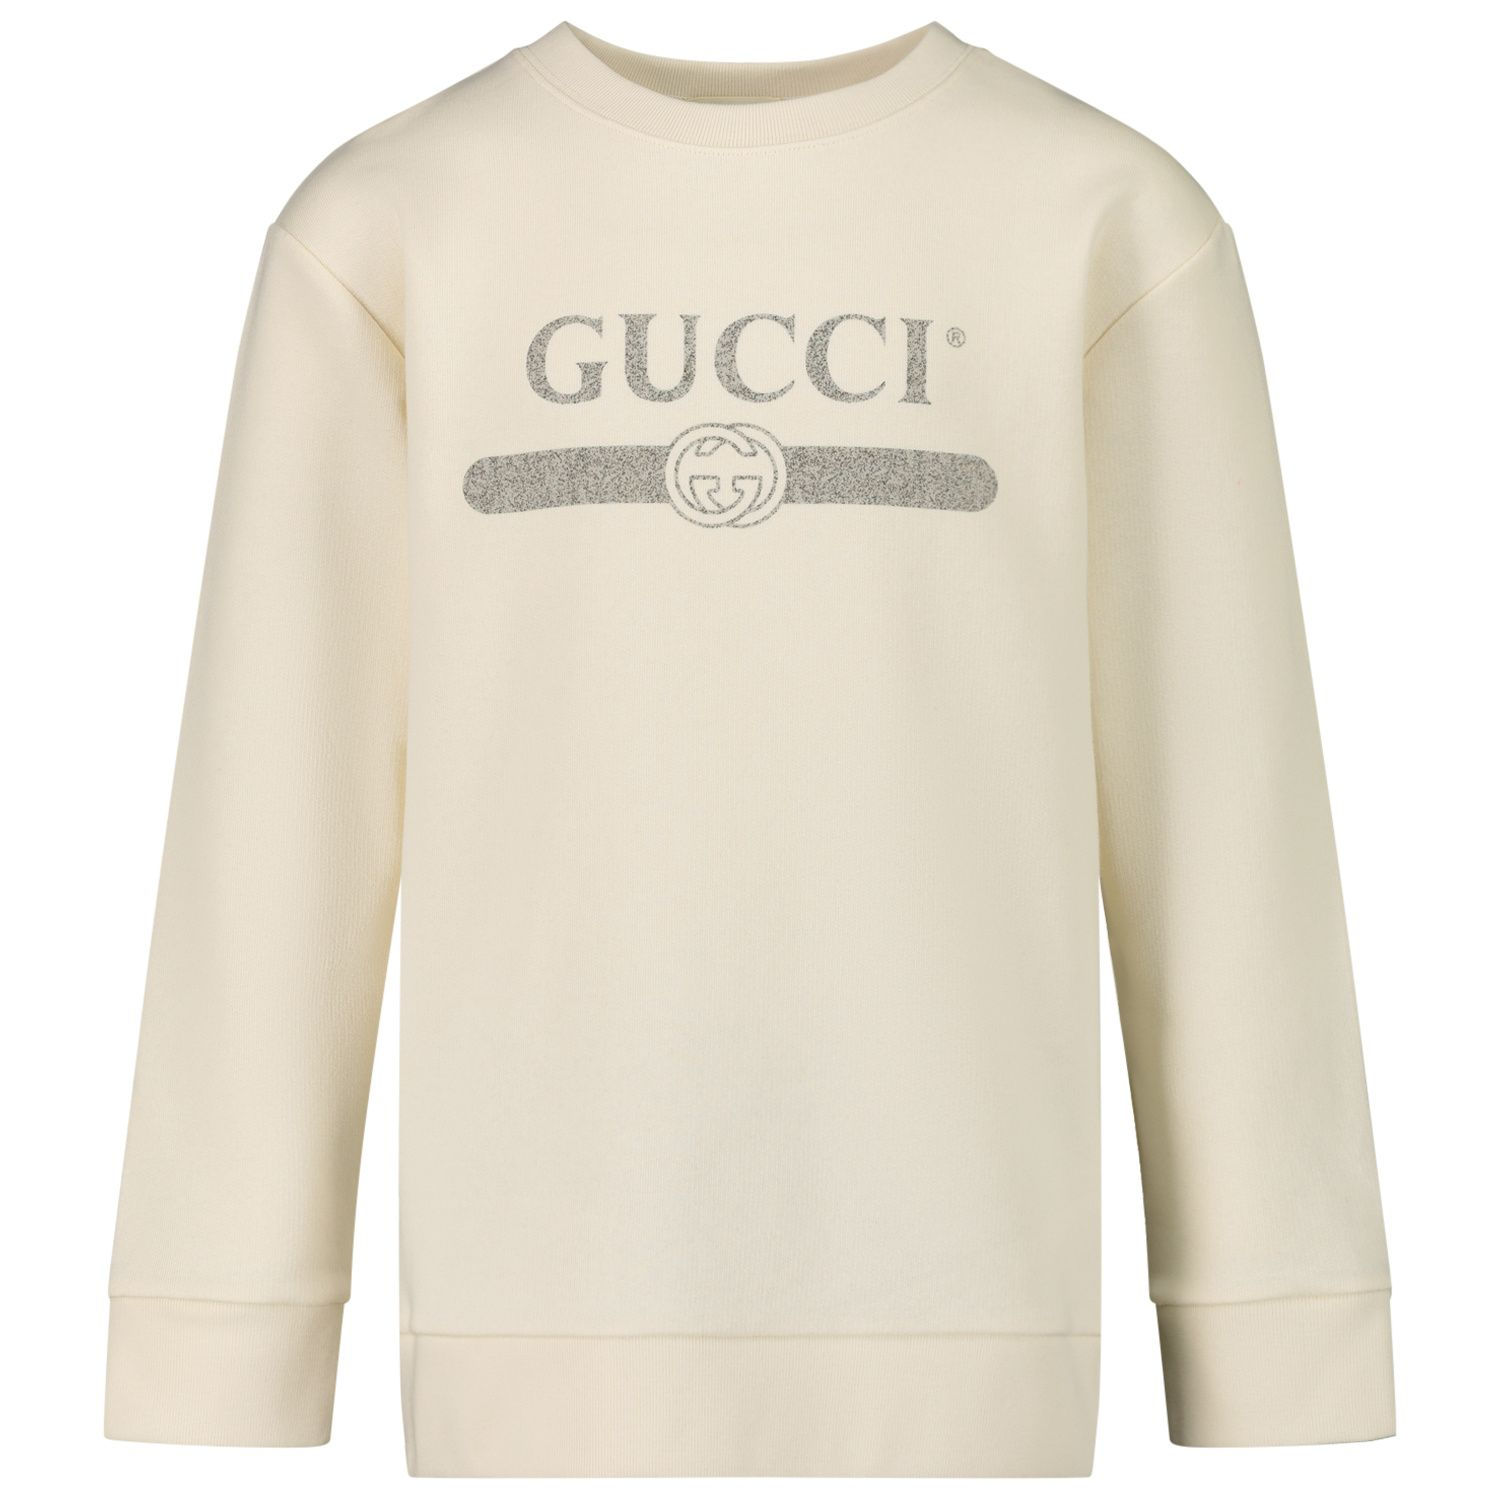 Picture of Gucci 627964 kids sweater white